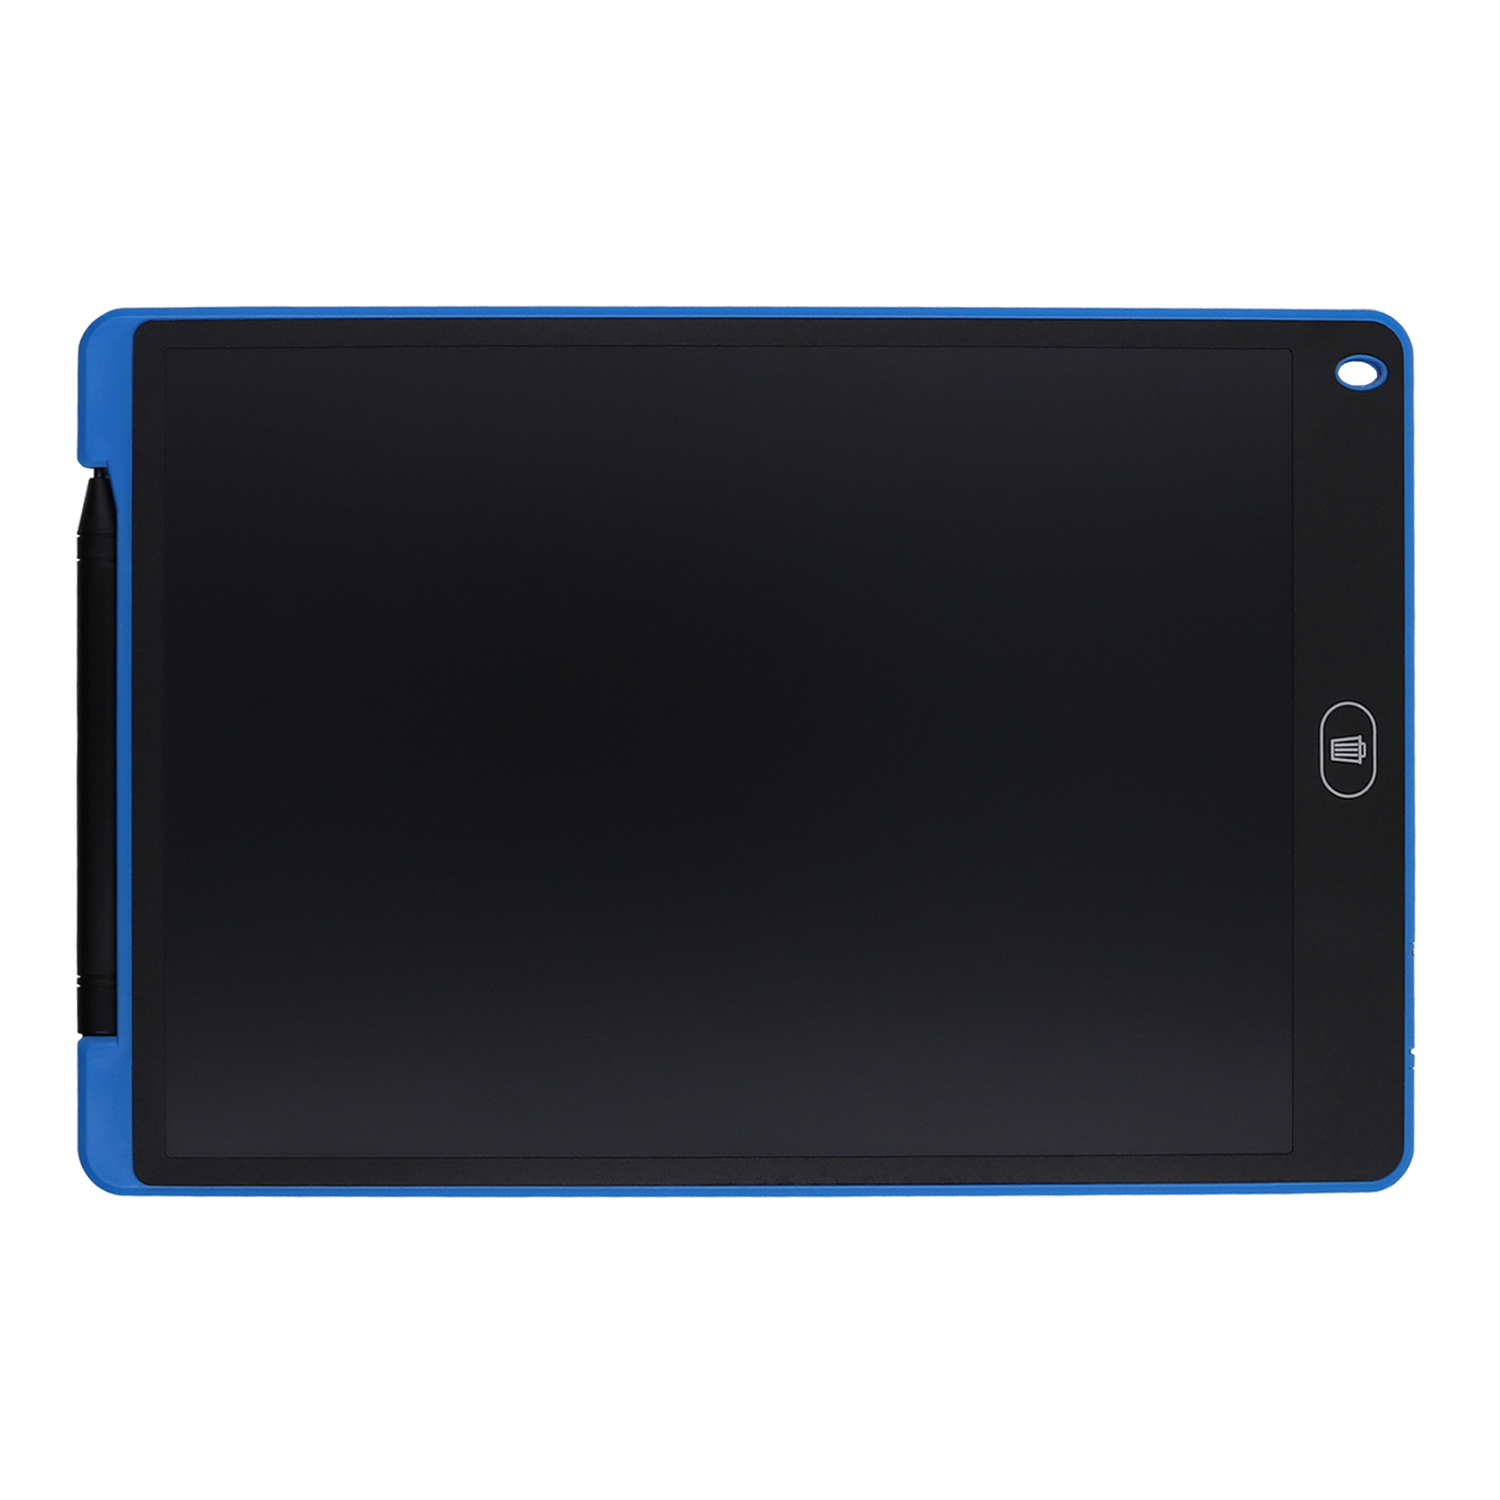 12 Inch Lcd E-writer Tablet Writing Drawing Memo Message Black Boogie Board(blue)